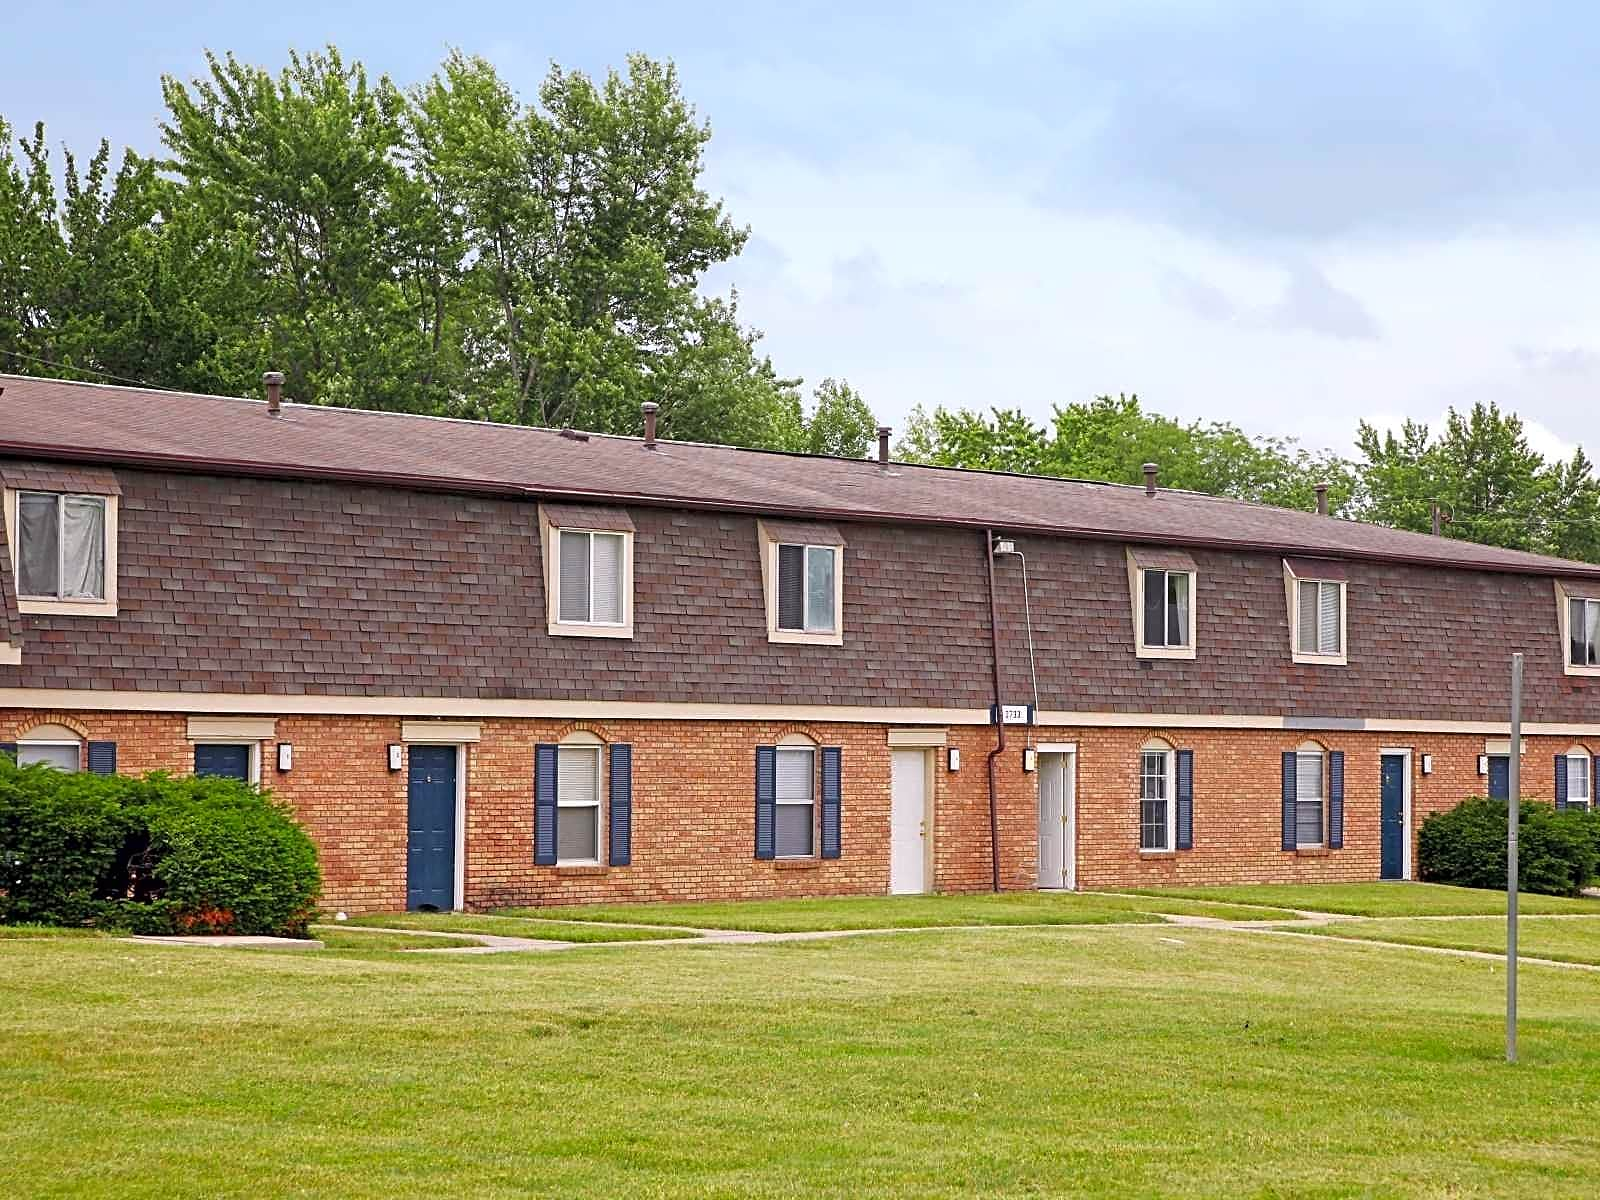 Photo: Fort Wayne Apartment for Rent - $689.00 / month; 3 Bd & 2 Ba